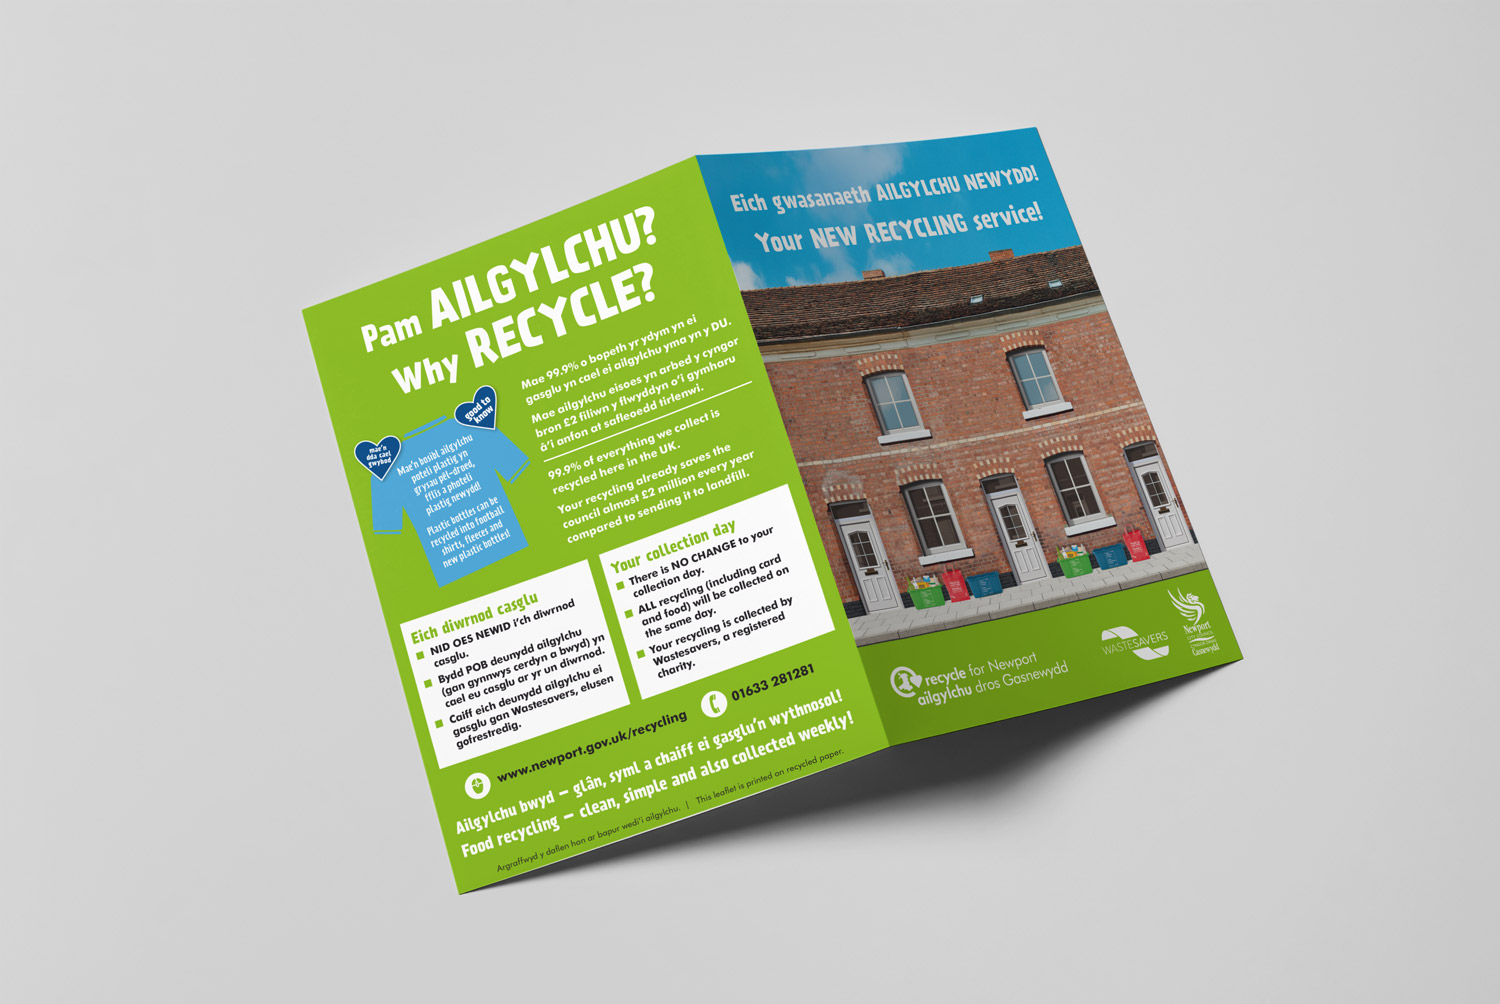 recycling-leaflet-outside-spread-get-it-sorted-recycle-now-branding.jpg